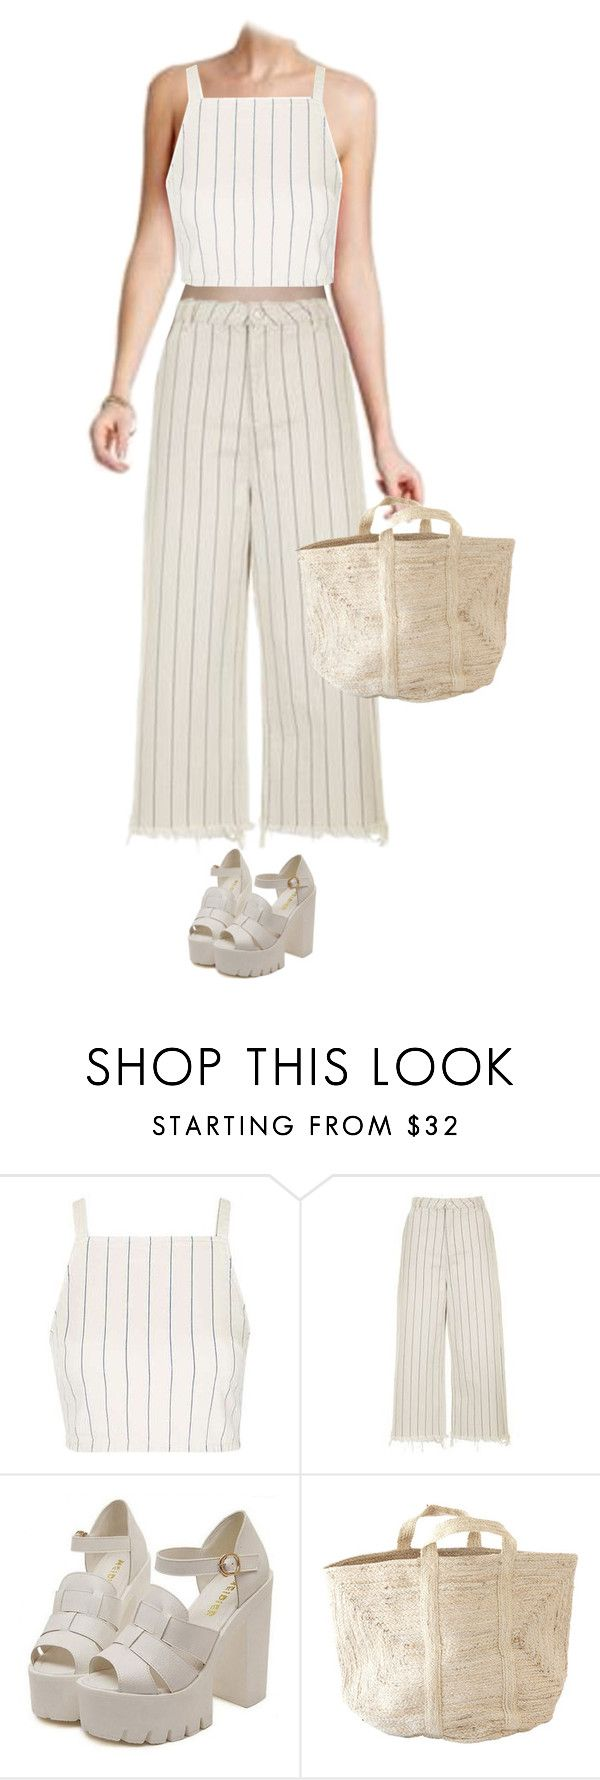 """""""Picnic"""" by clarastenfeldt ❤ liked on Polyvore featuring Topshop"""